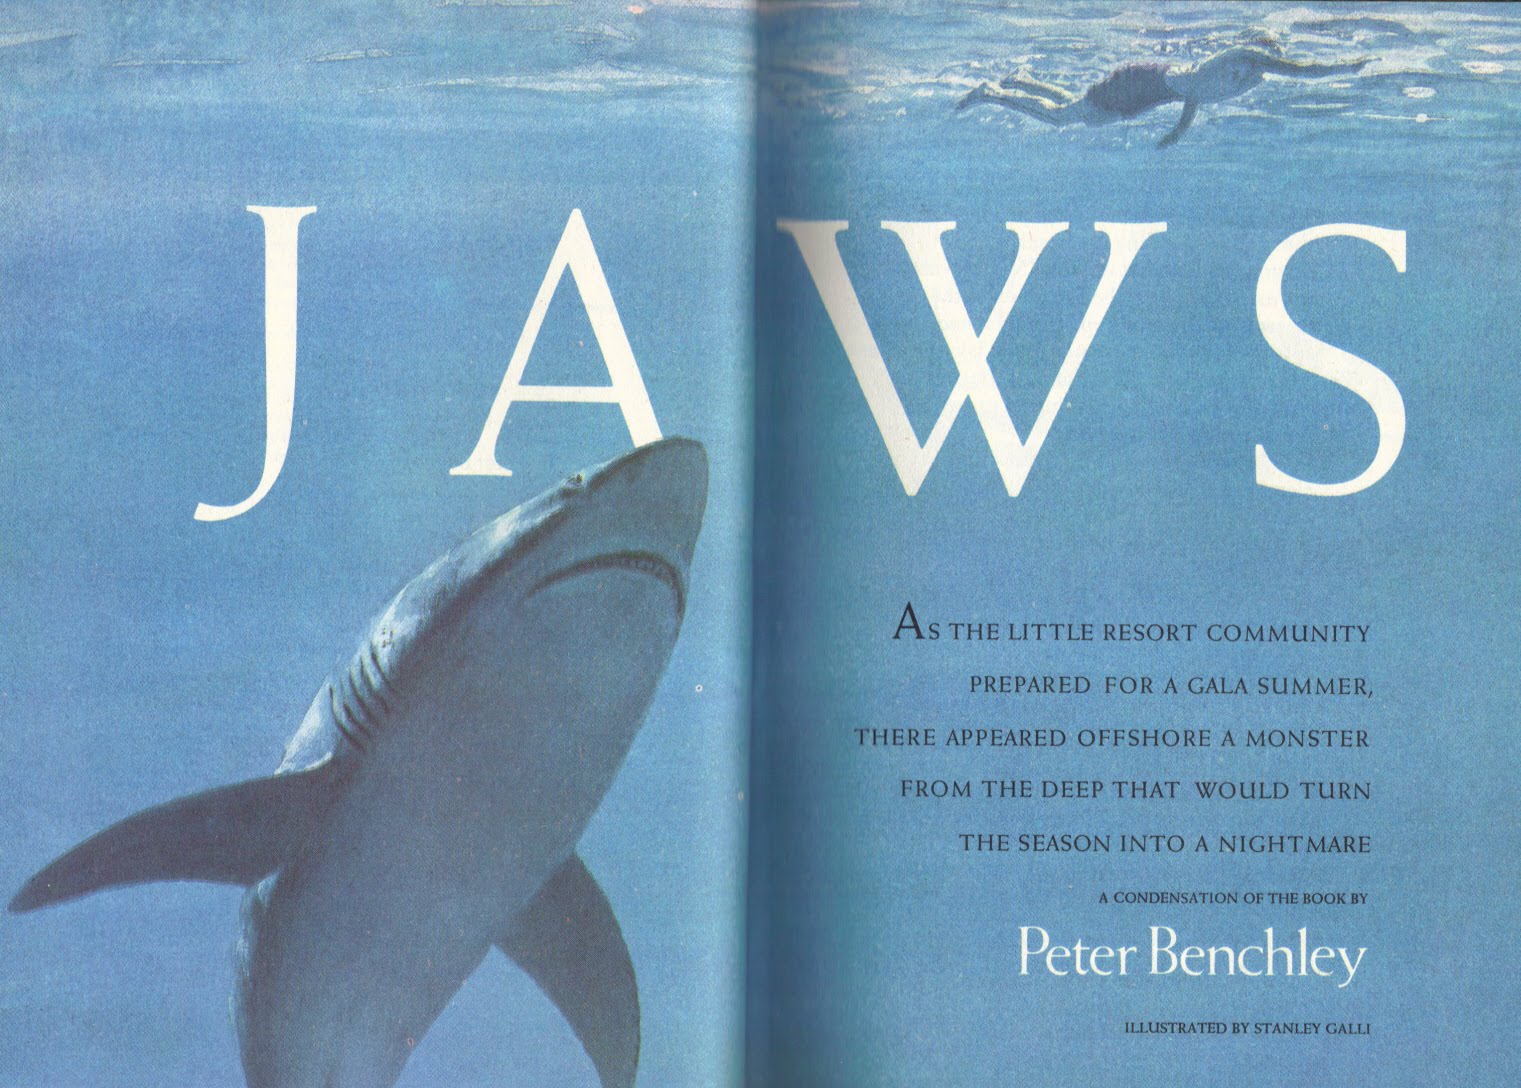 Jaws-by-Peter-Benchley-condensation